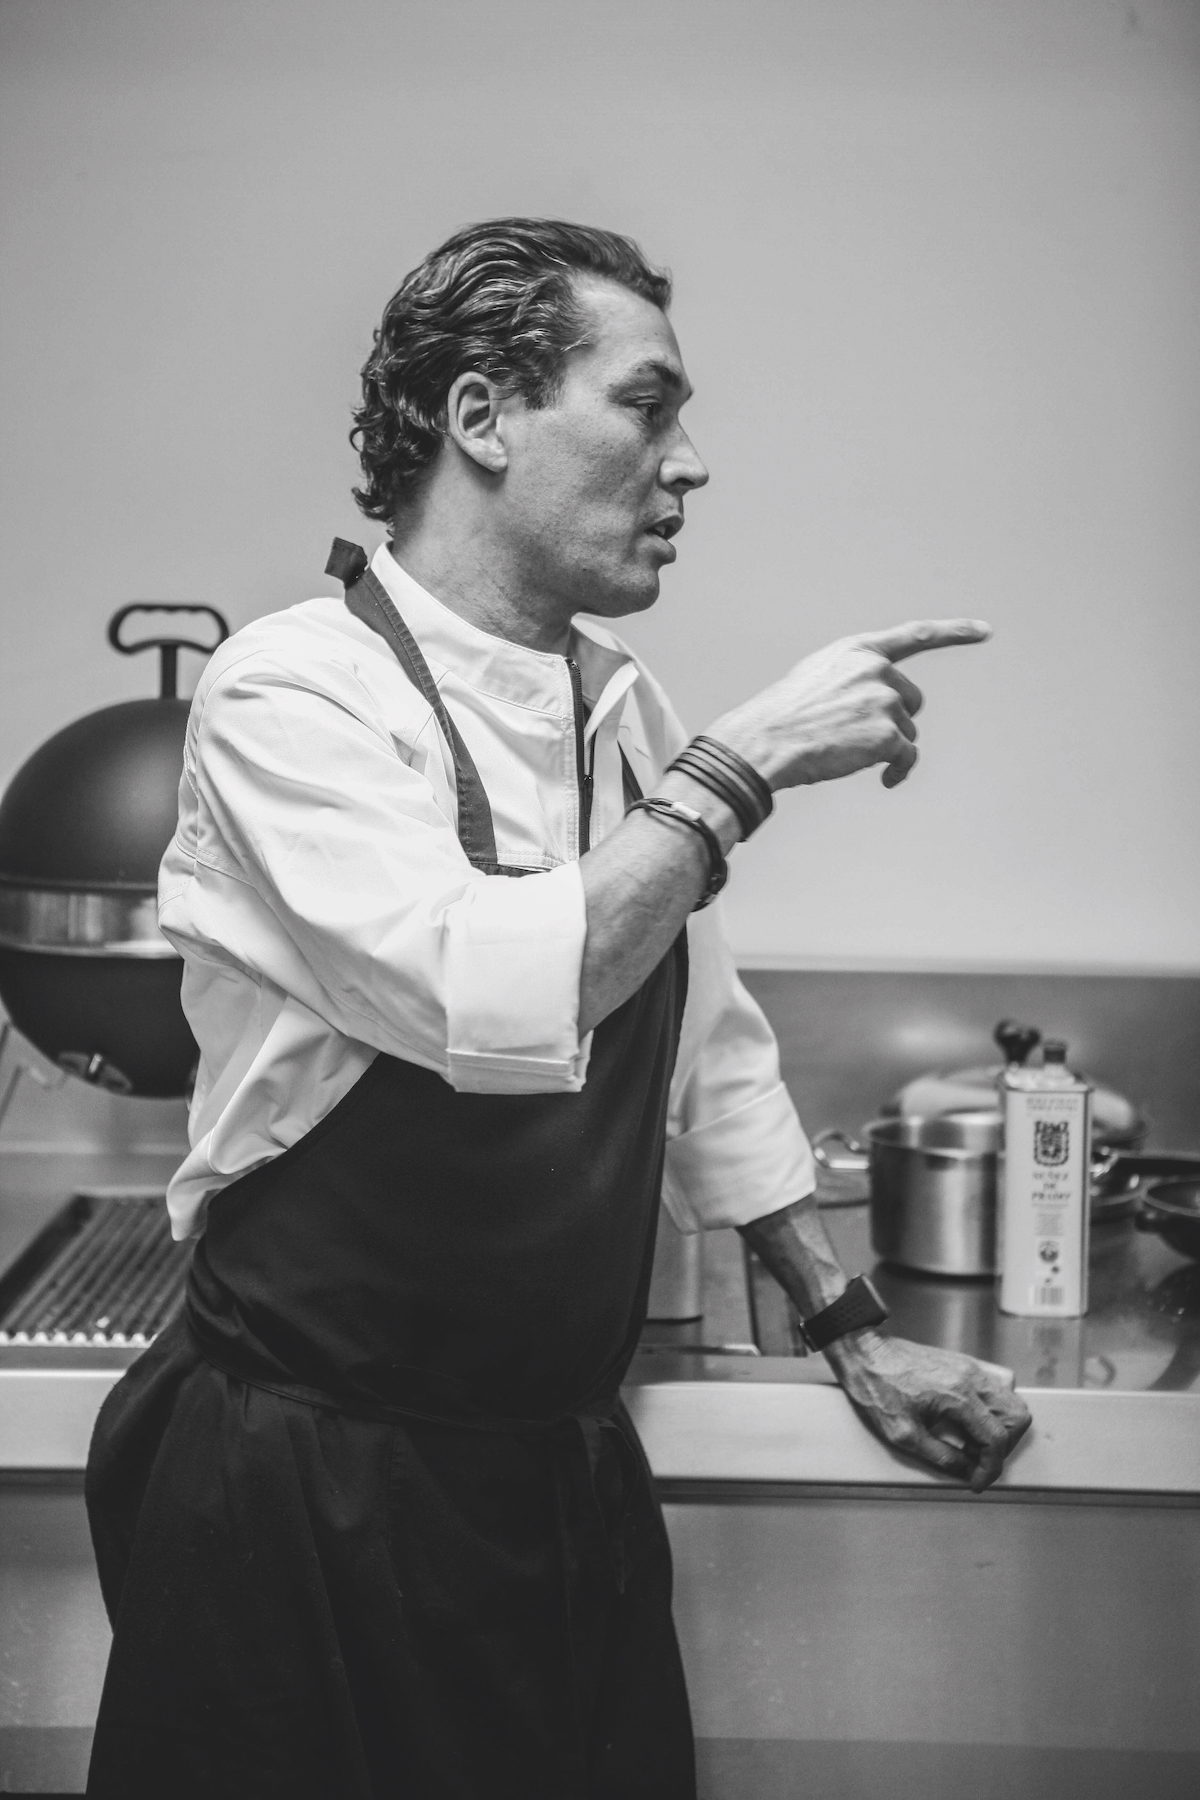 Sterrenchef Pascal Jalhay